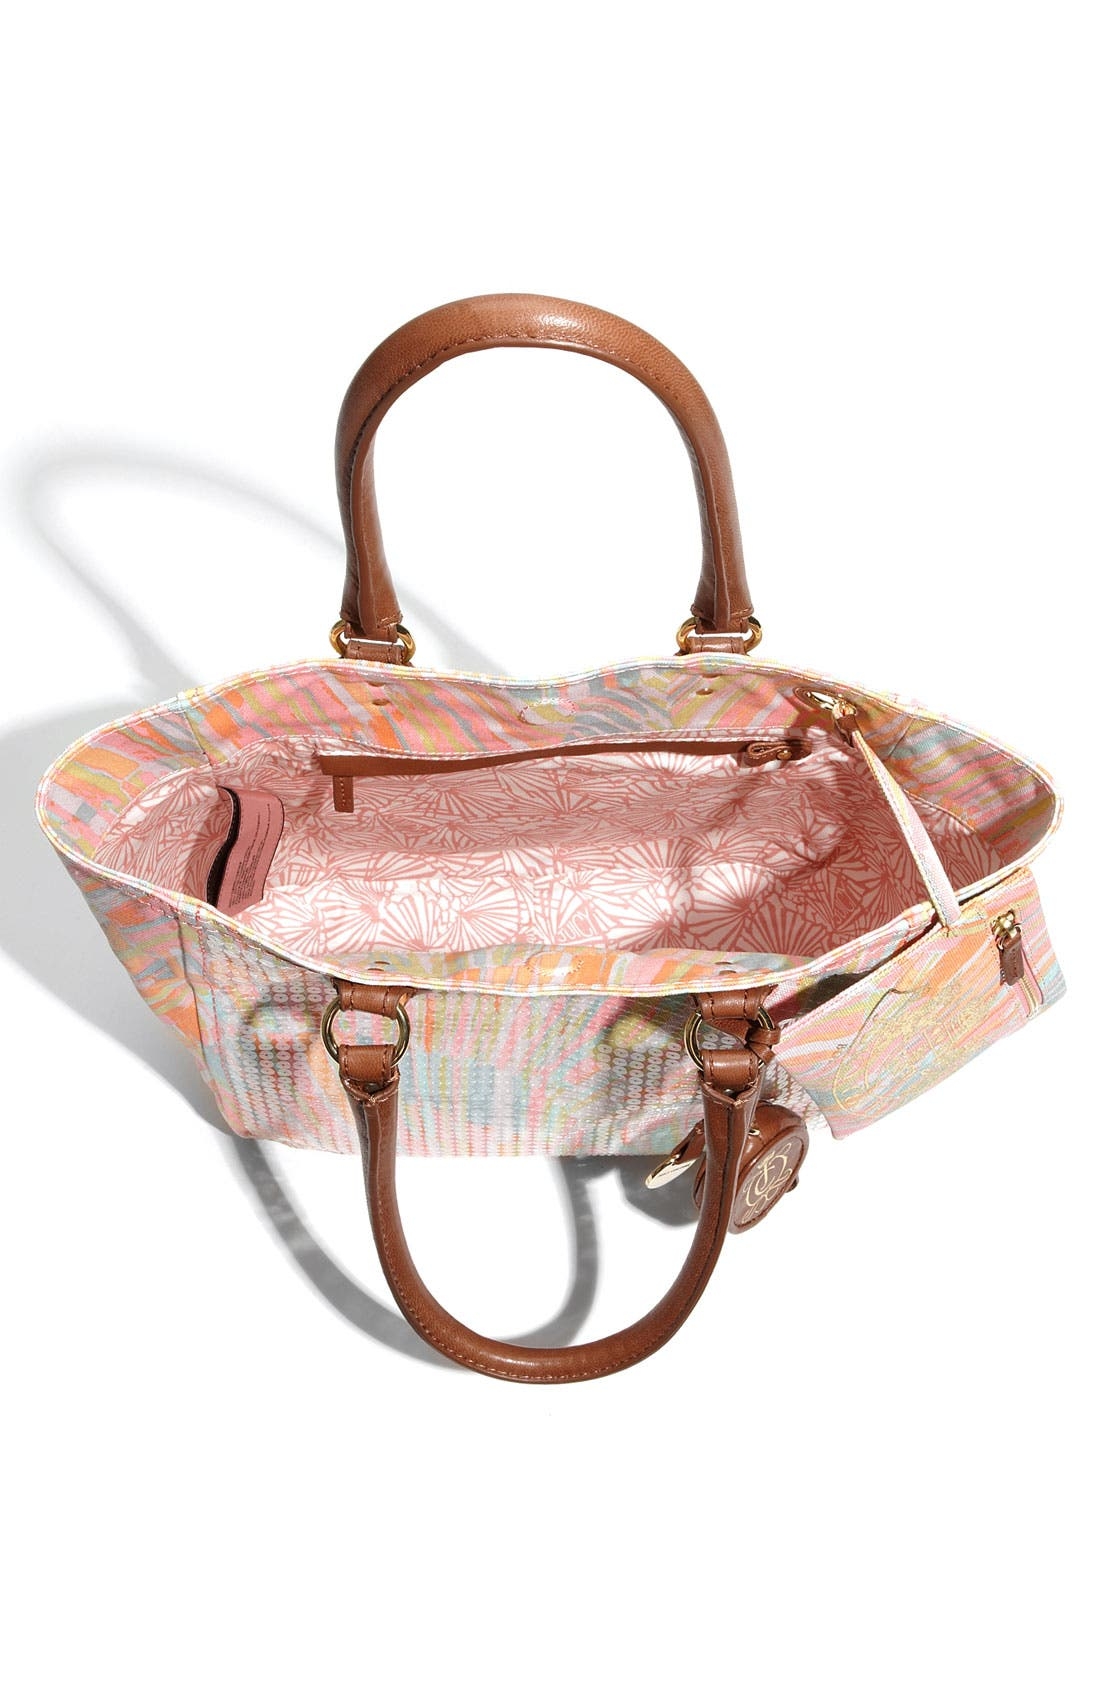 Alternate Image 3  - Juicy Couture 'Sunburst Sequins - Small' Tote